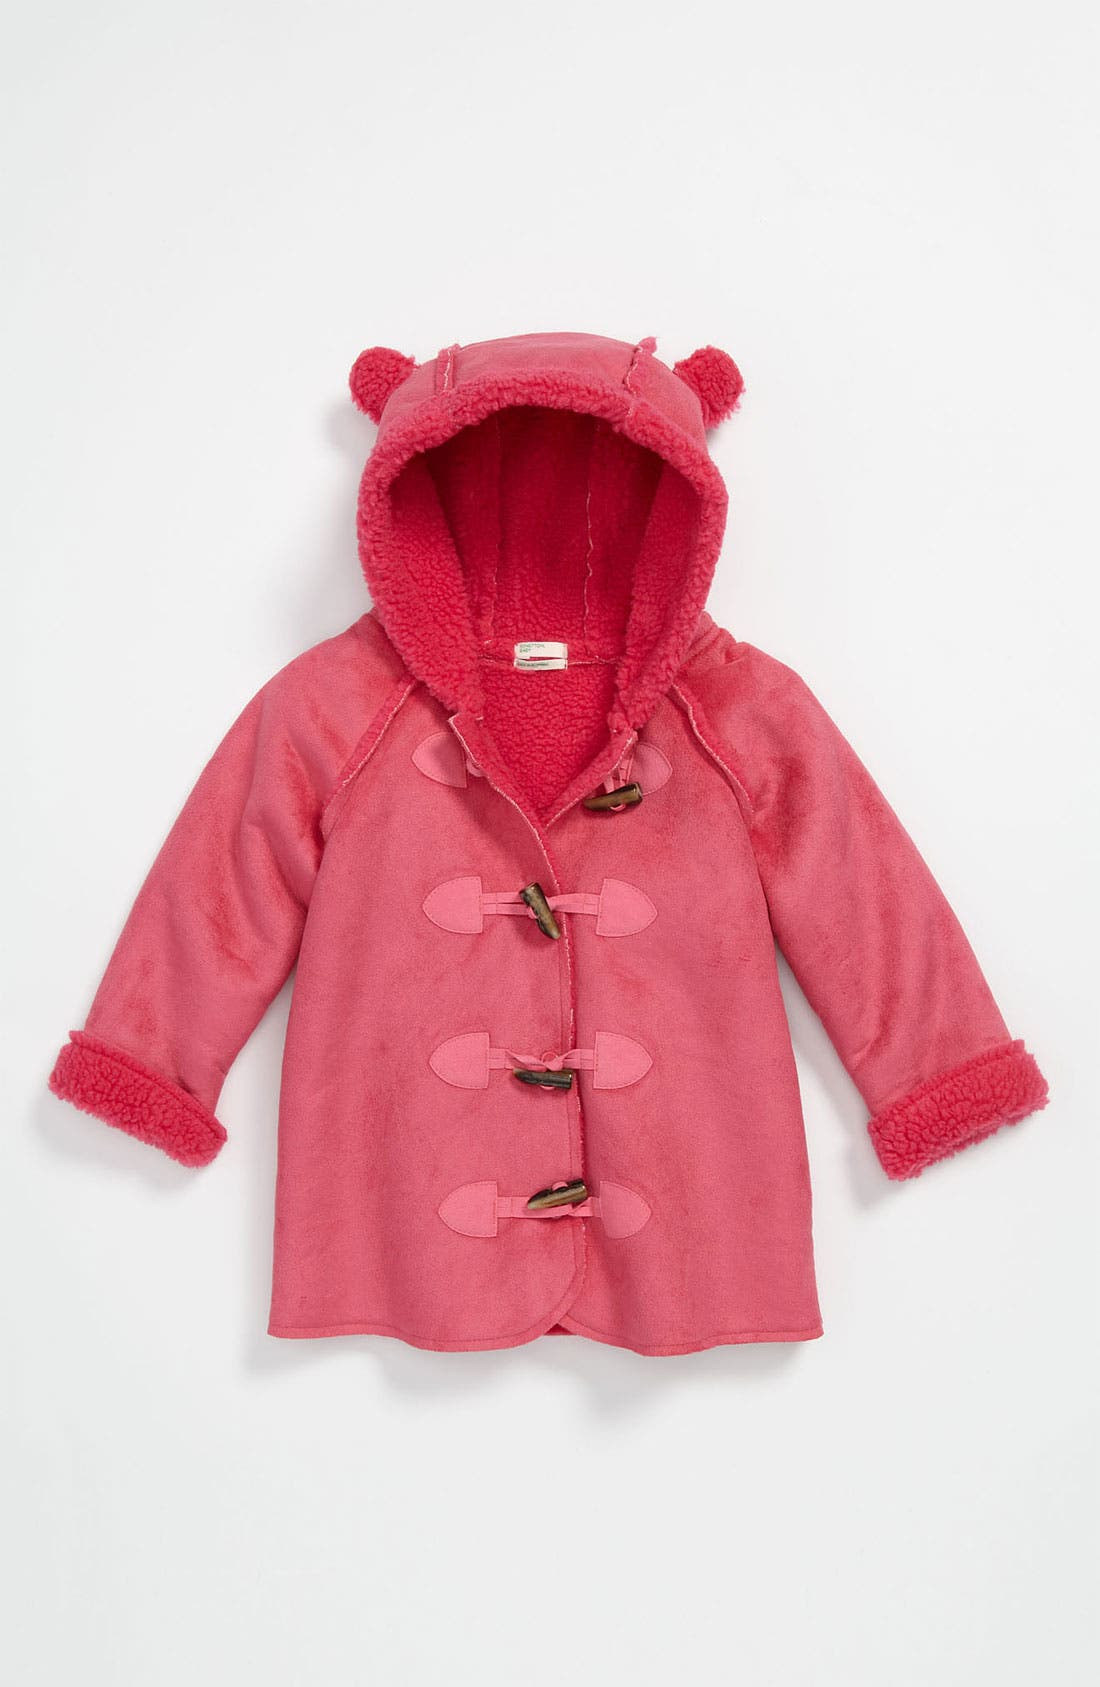 Main Image - United Colors of Benetton Kids Jacket (Infant)